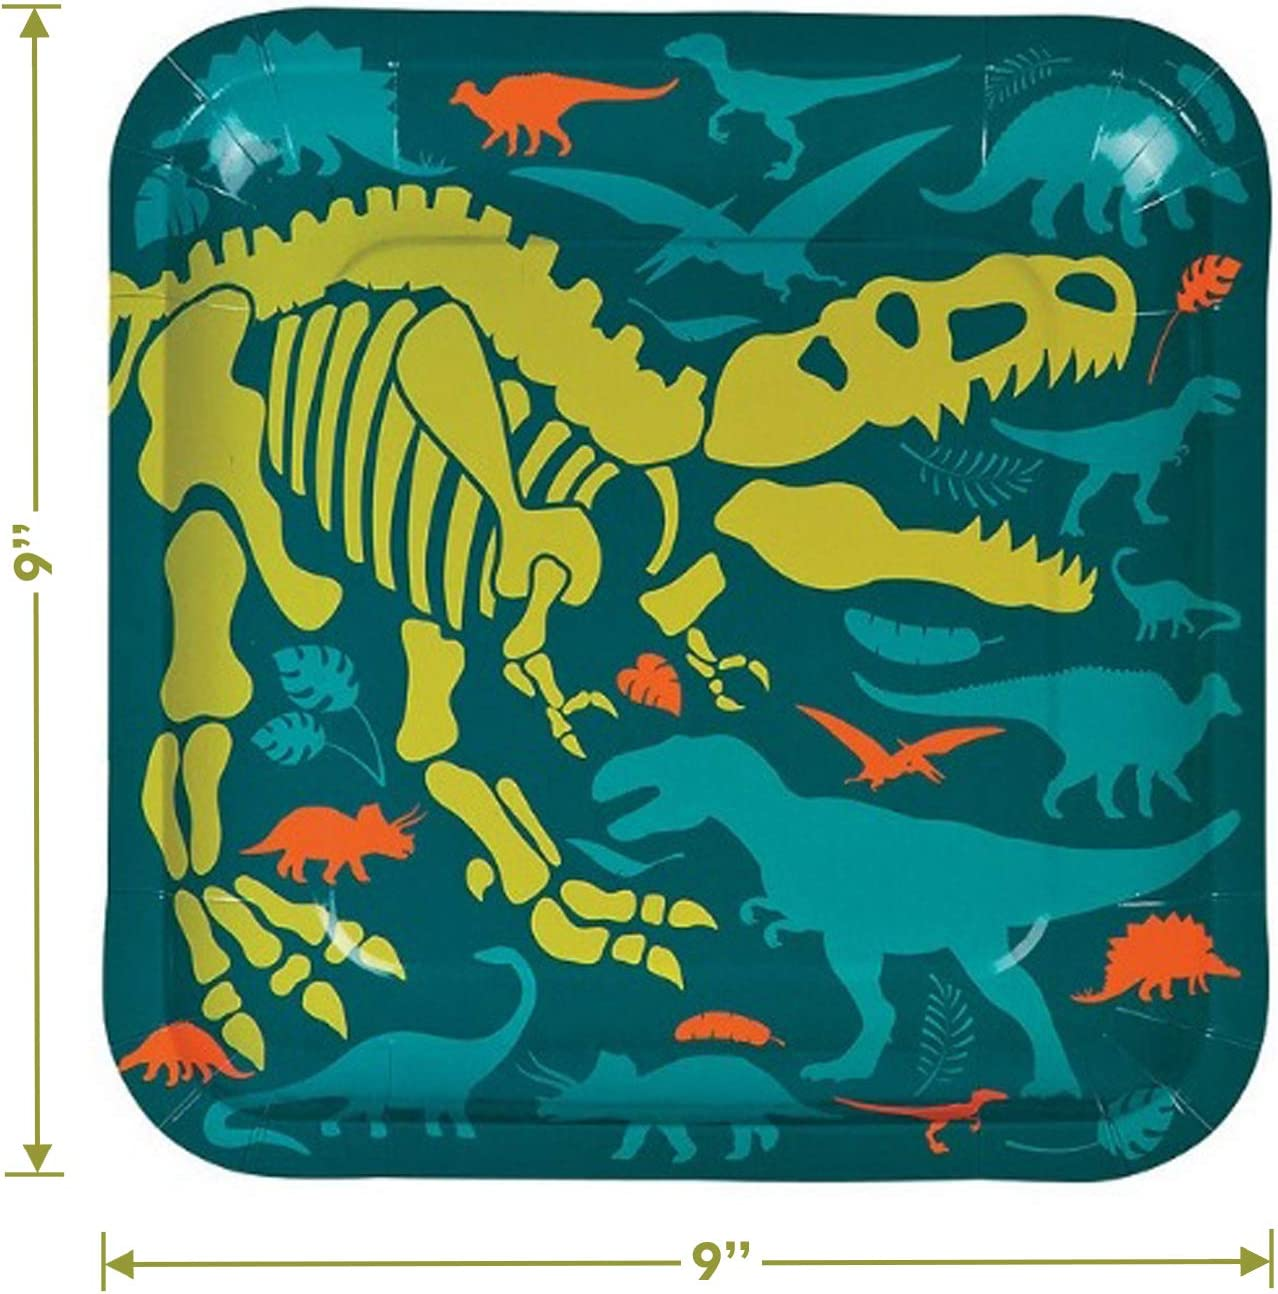 Serves 16 Dino Dig Fossil Skeleton Paper Dinner Plates and Luncheon Napkins Dinosaur Party Supplies